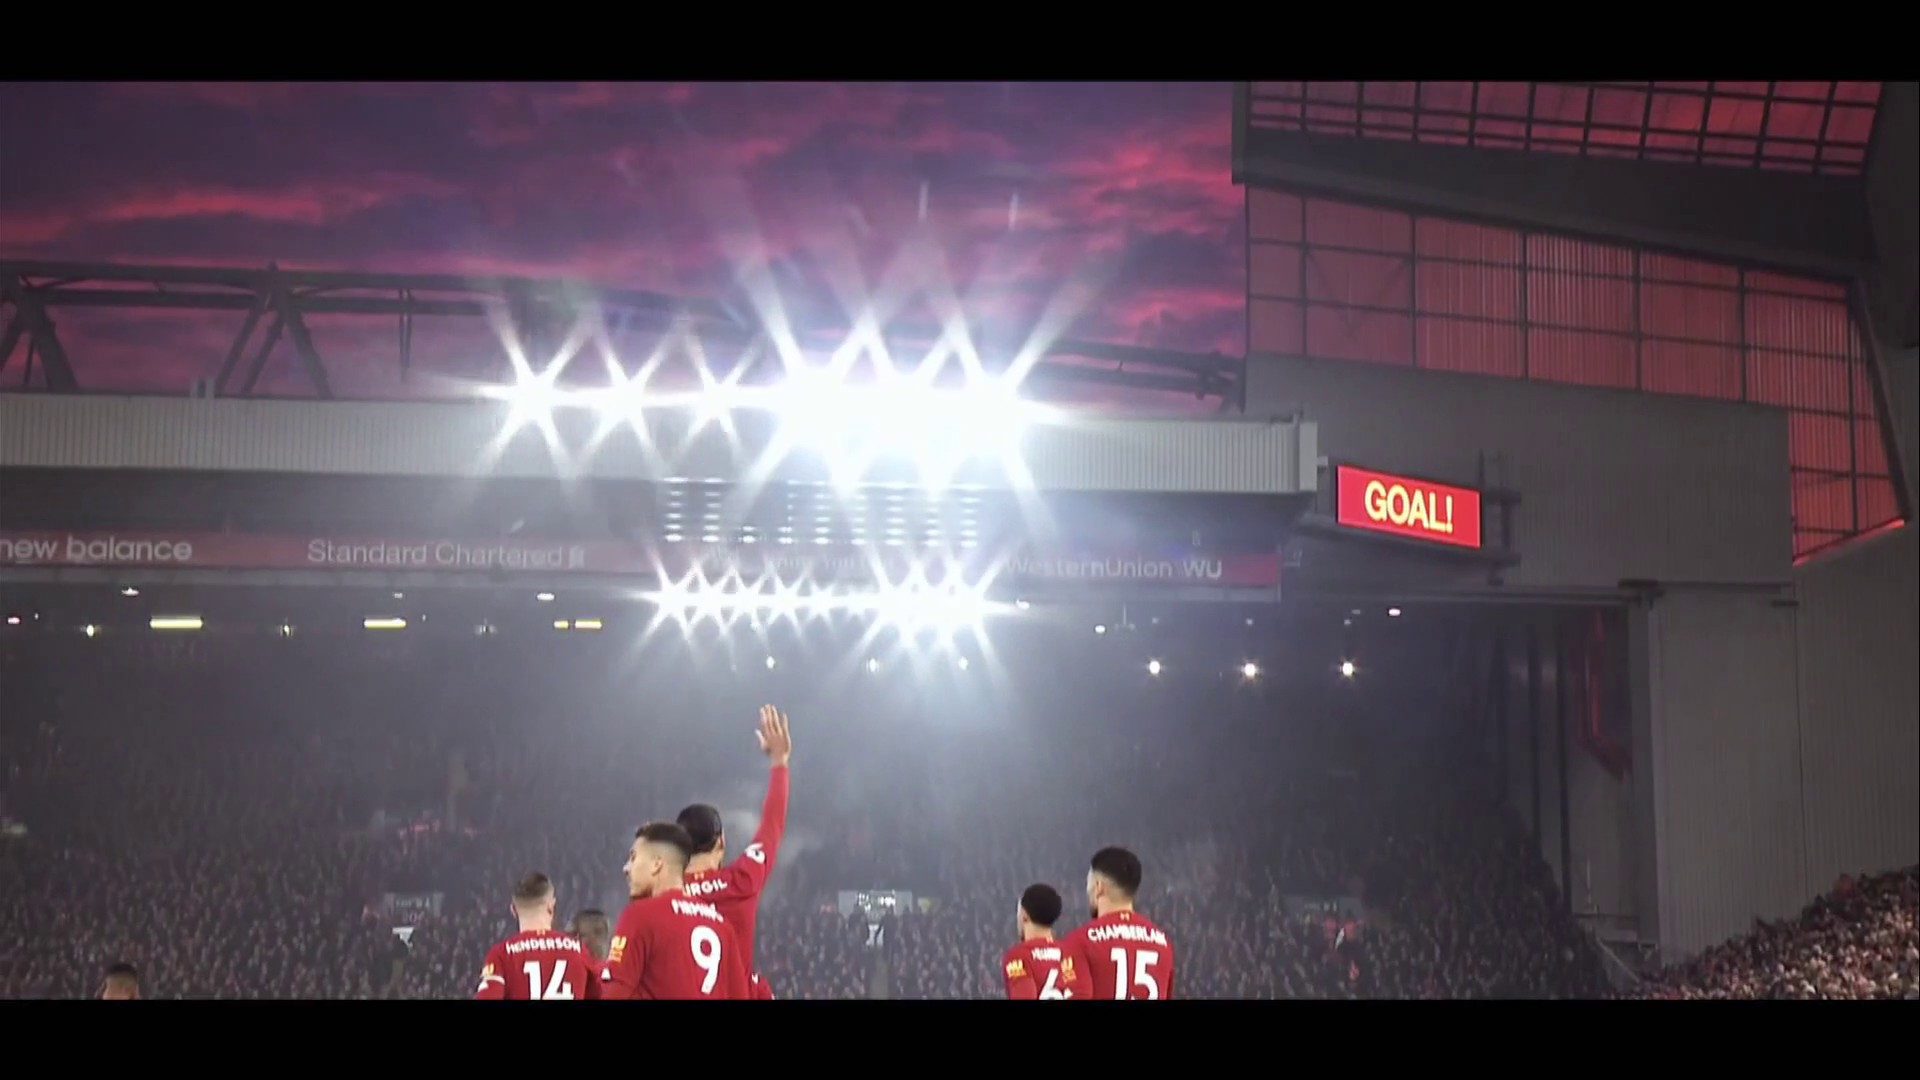 After 30 long years, Liverpool are league champions as they seal the Premier League title. 🔴🏆  Liverpool fans, watch this, drink it in...😍 https://t.co/nrHz40dpFl